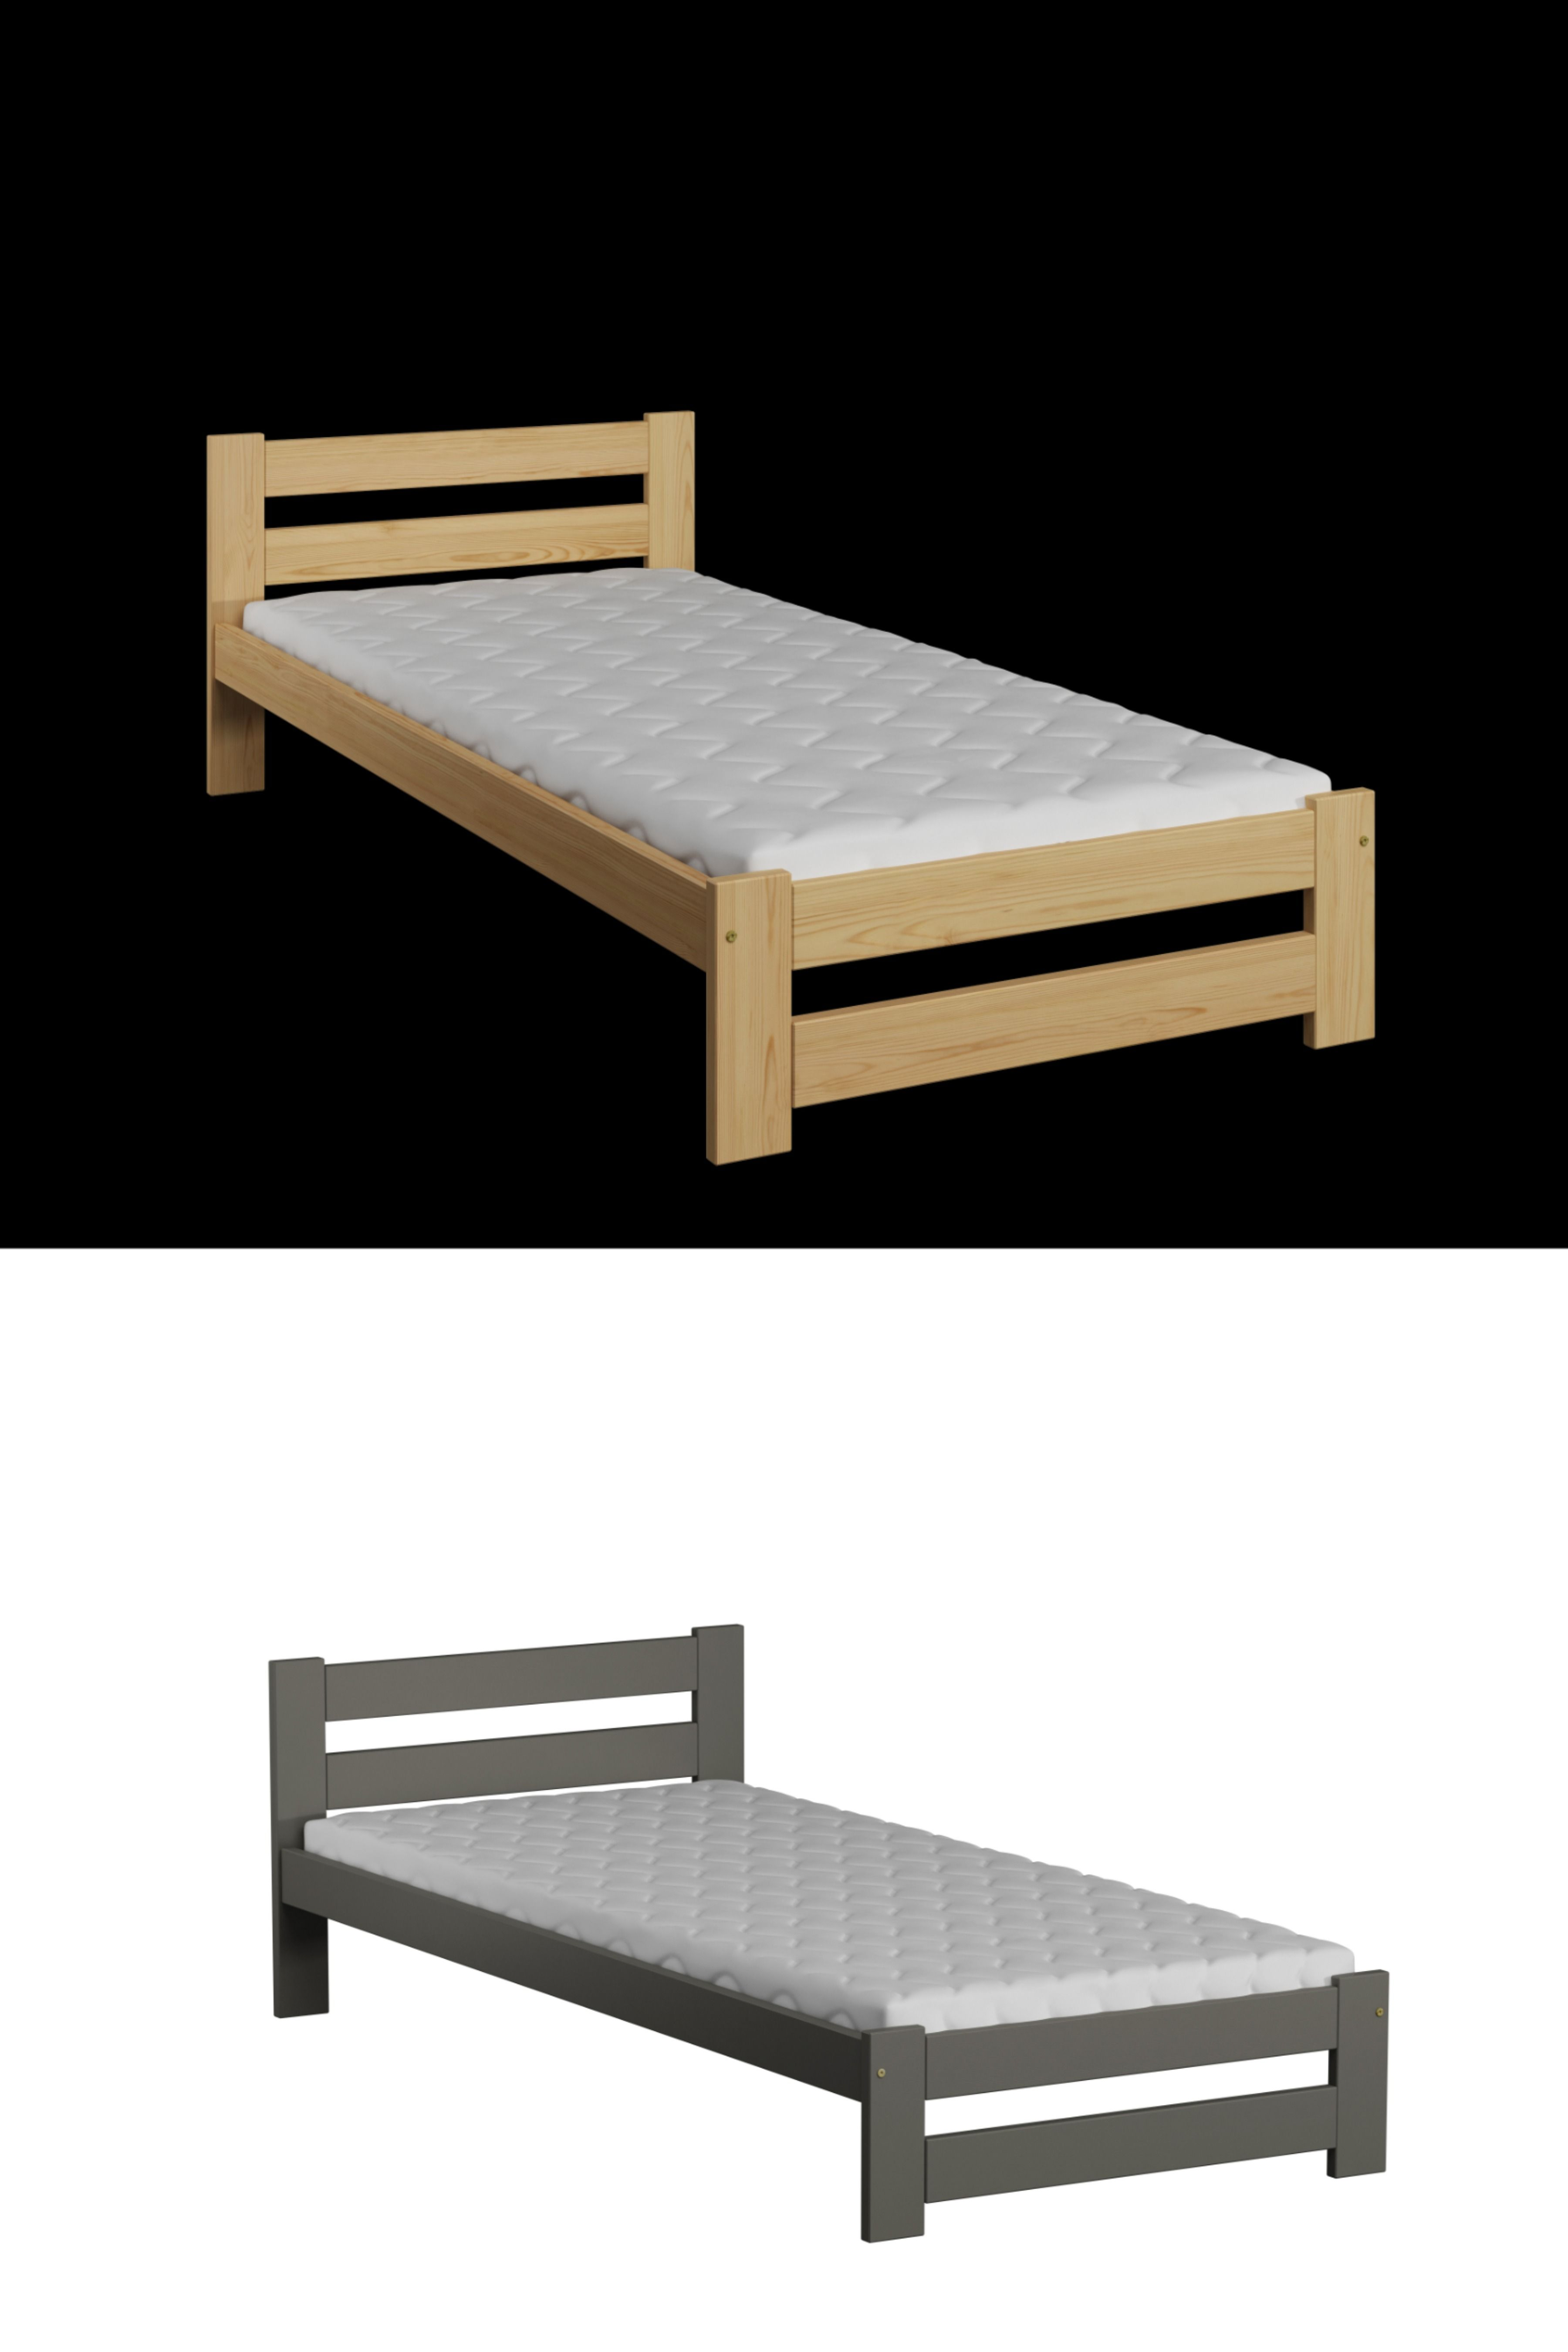 Pin on Bed Frames